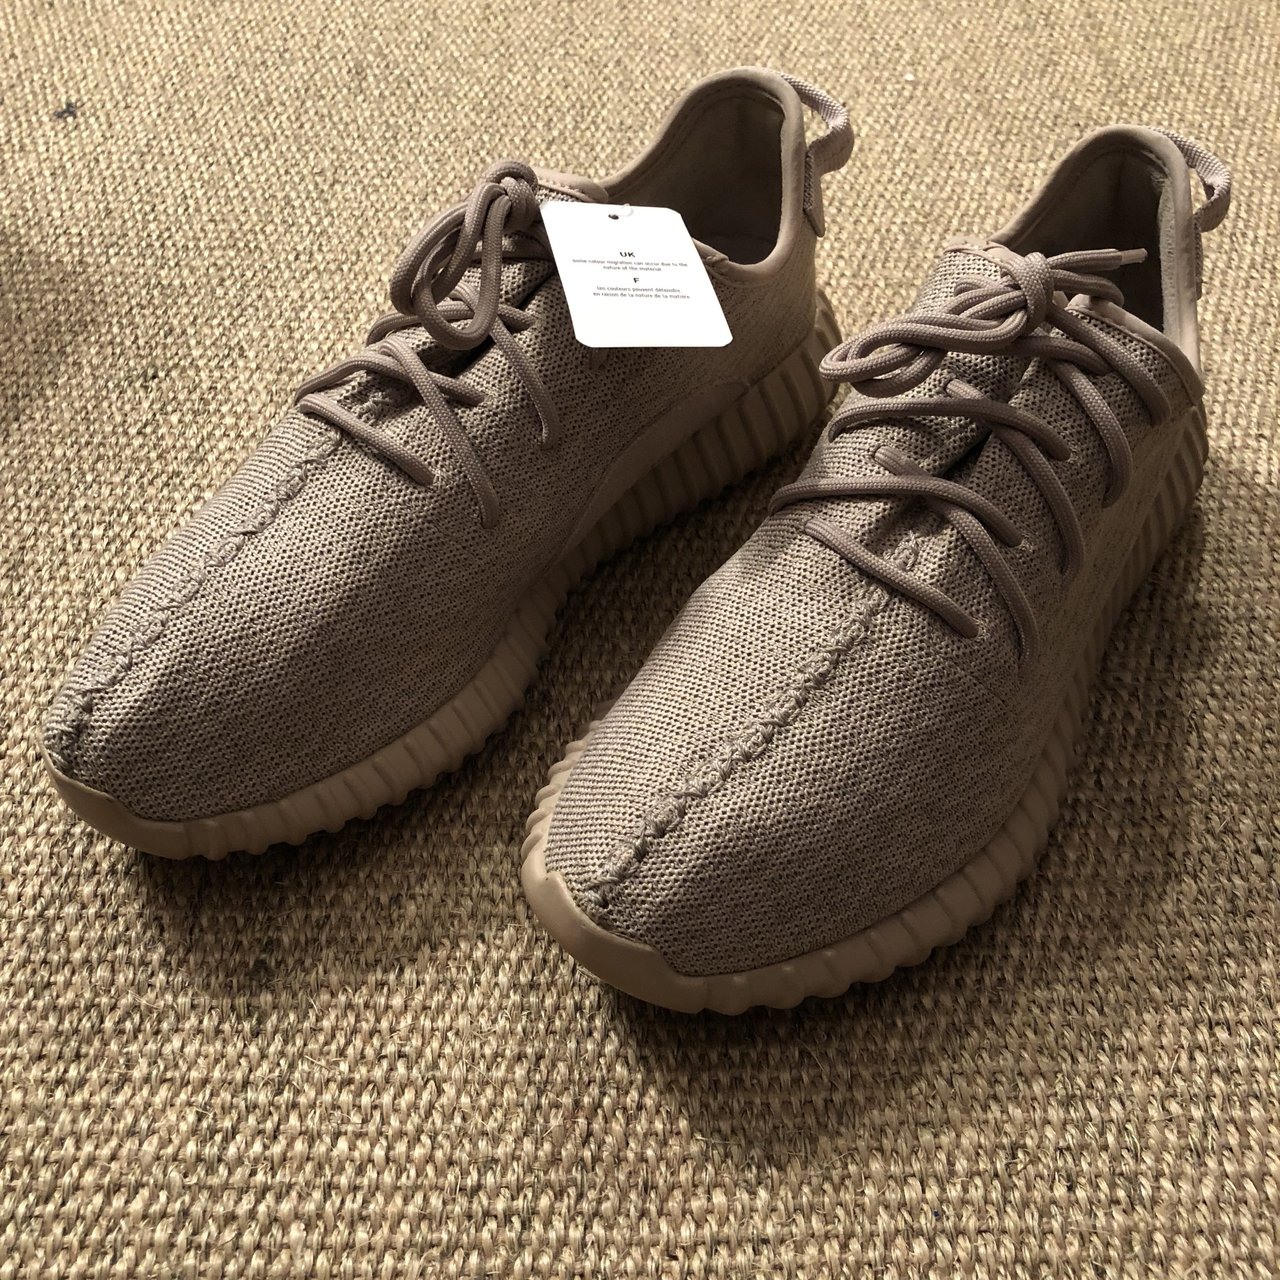 00c7e1e55b85 ADIDAS YEEZY ULTRA BOOST 350 V1 Oxford Tan